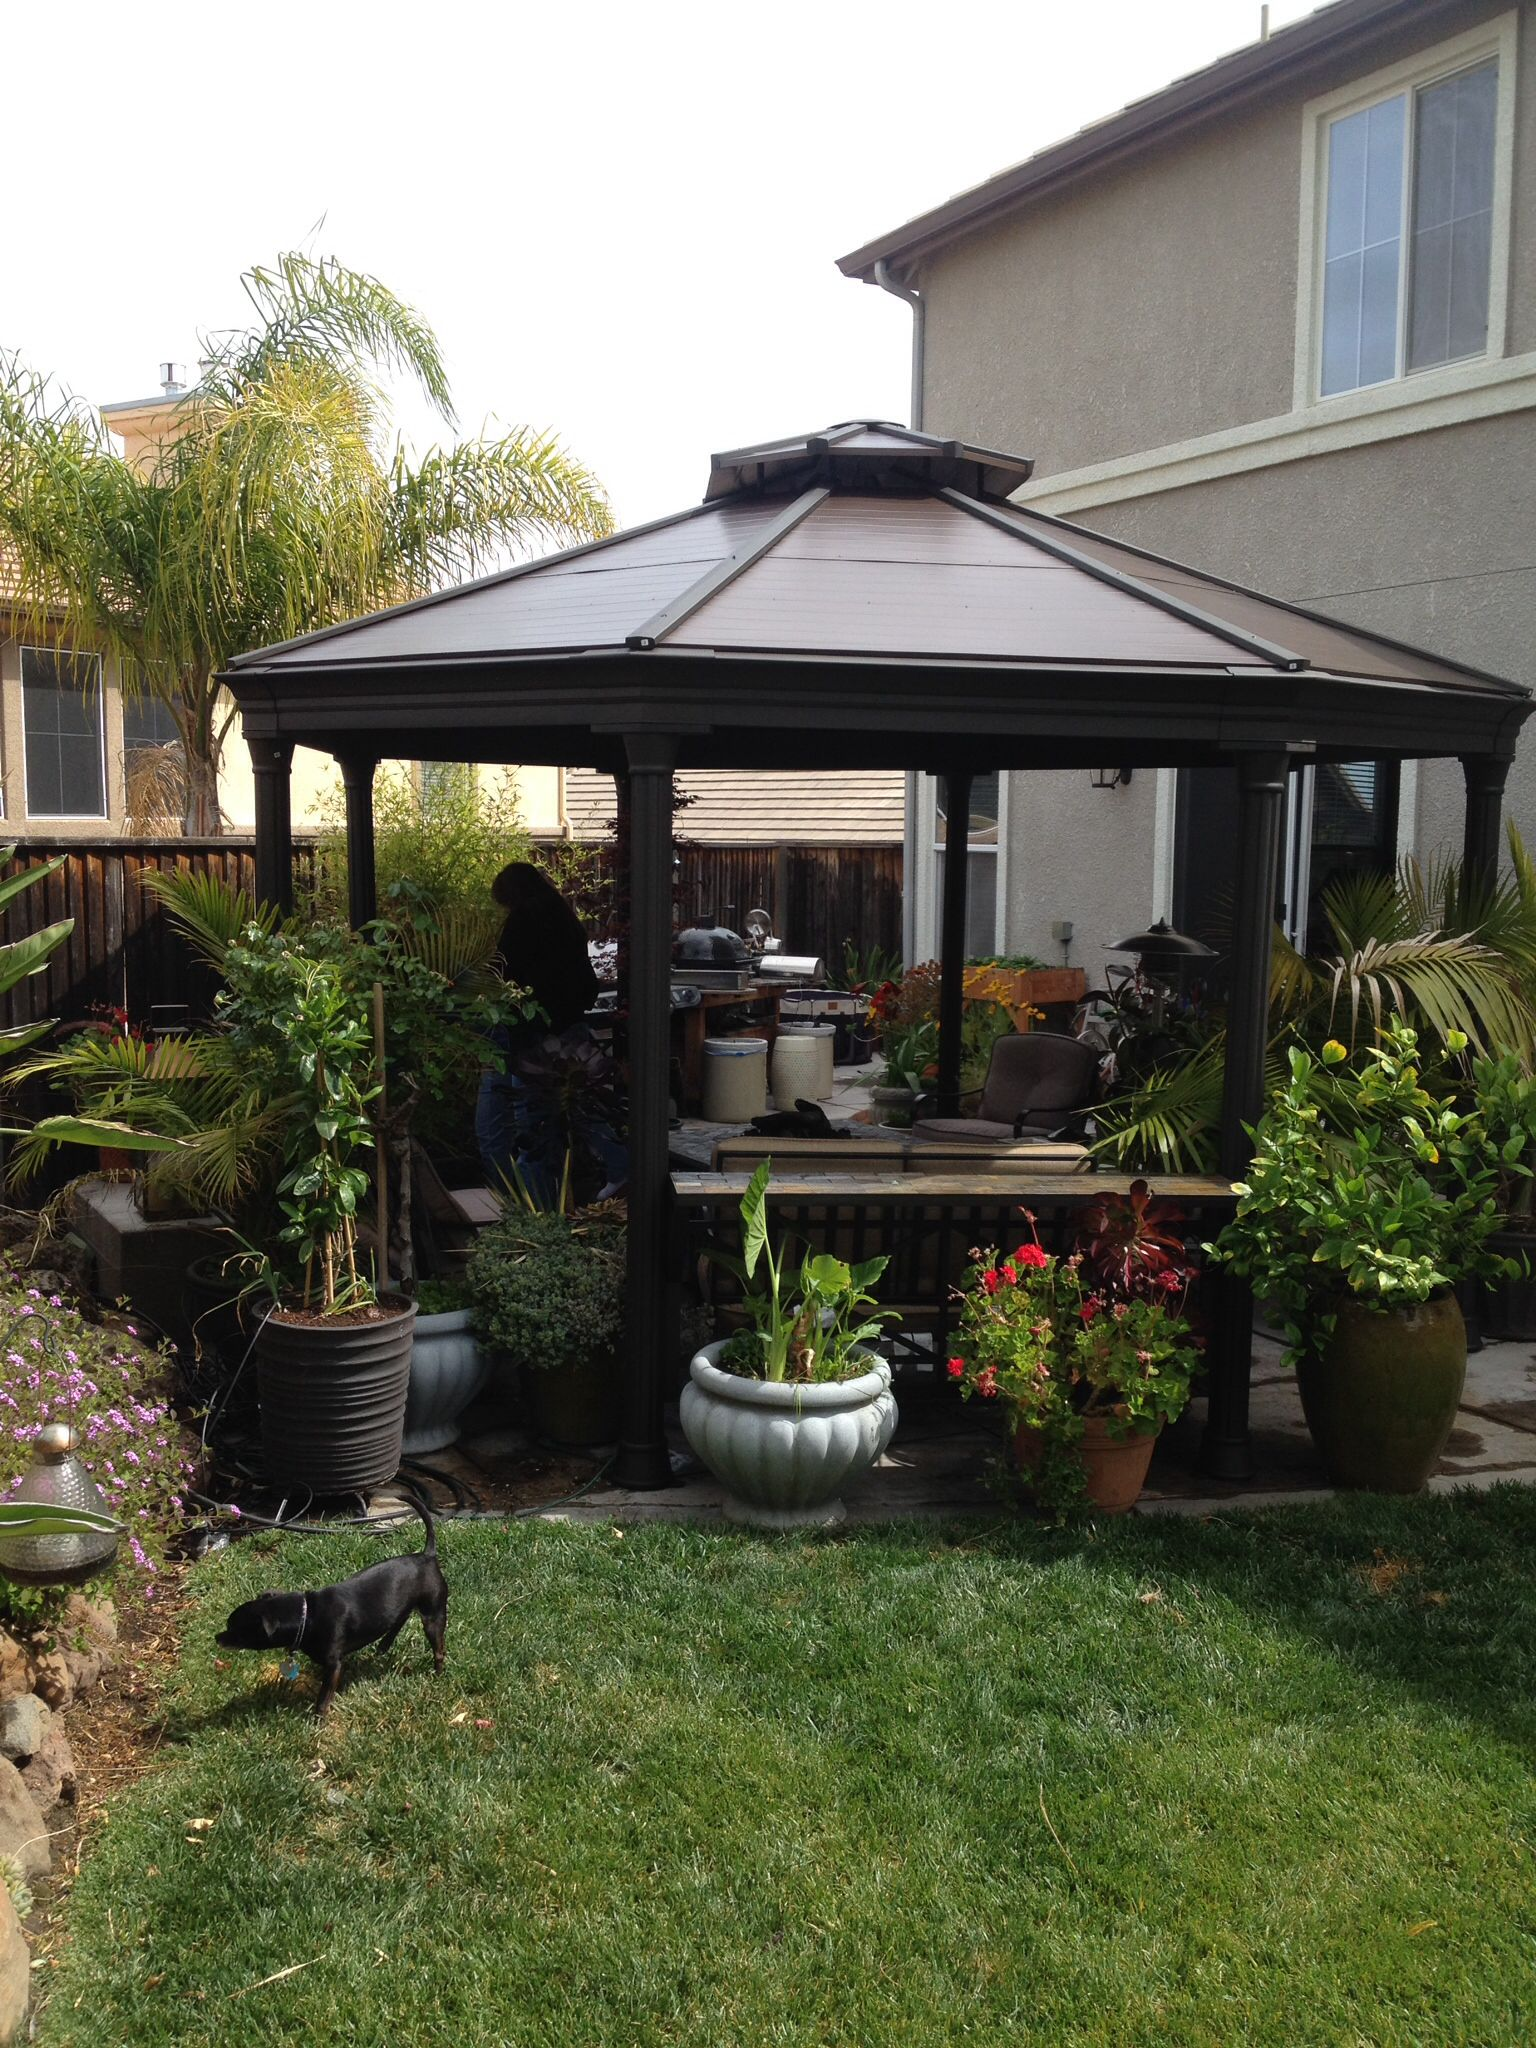 The Costco Gazebo In My Backyard Backyard Gazebo Backyard Gazebo